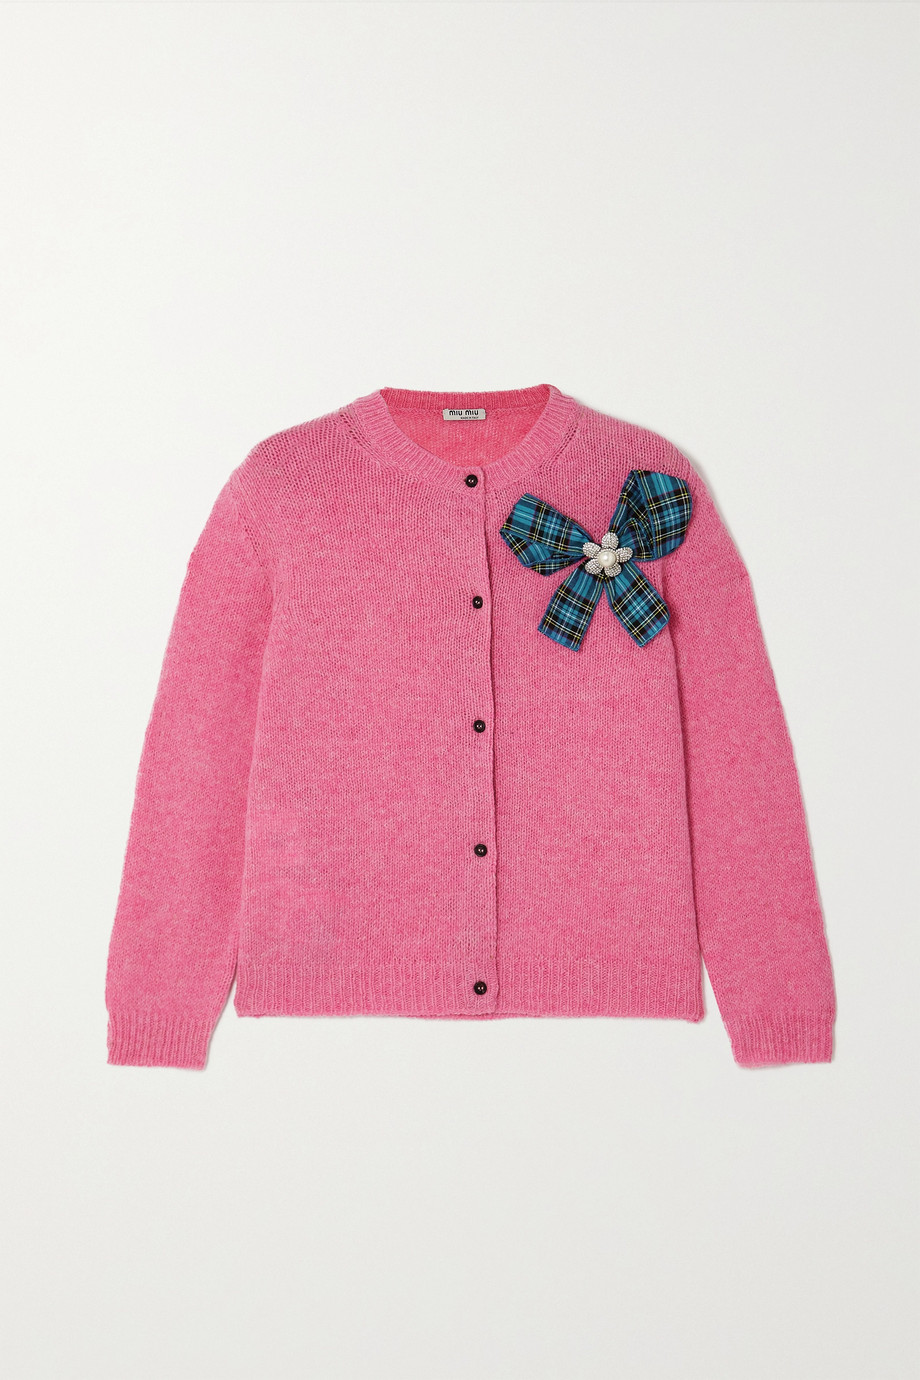 Miu Miu Bow-detailed embellished wool cardigan